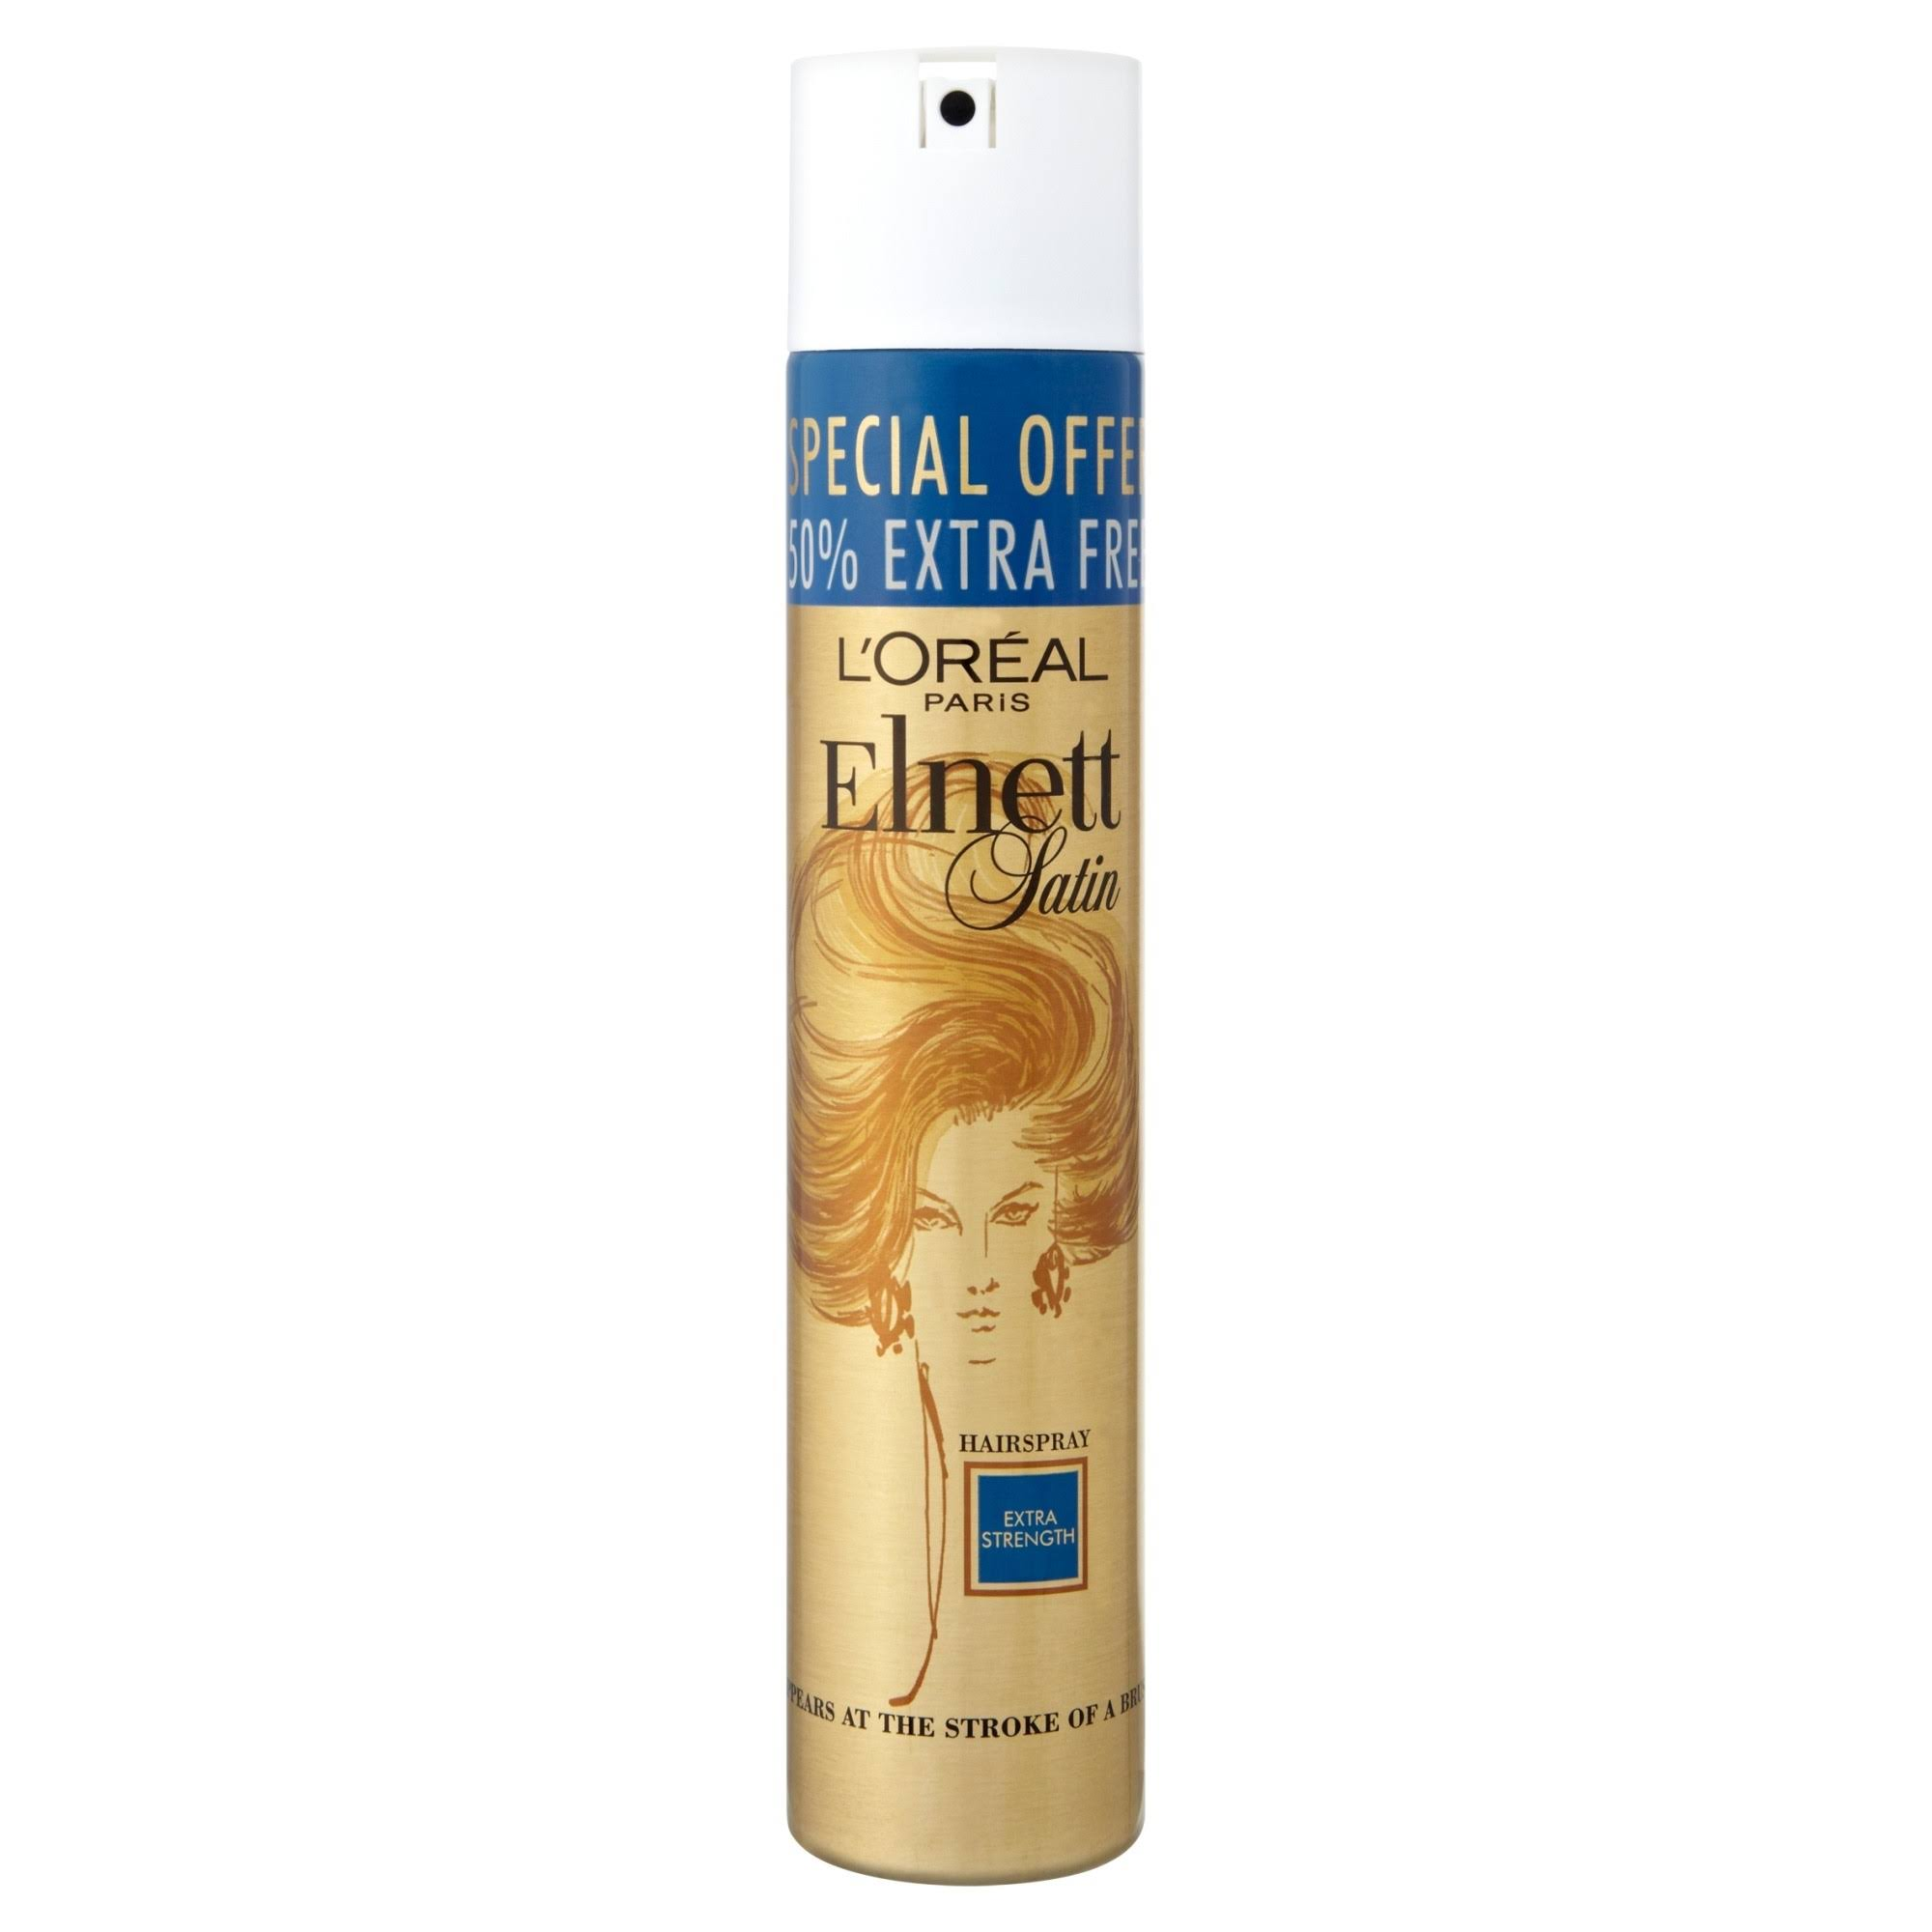 L'Oreal Elnett Satin Hairspray - Extra Strength, 300ml